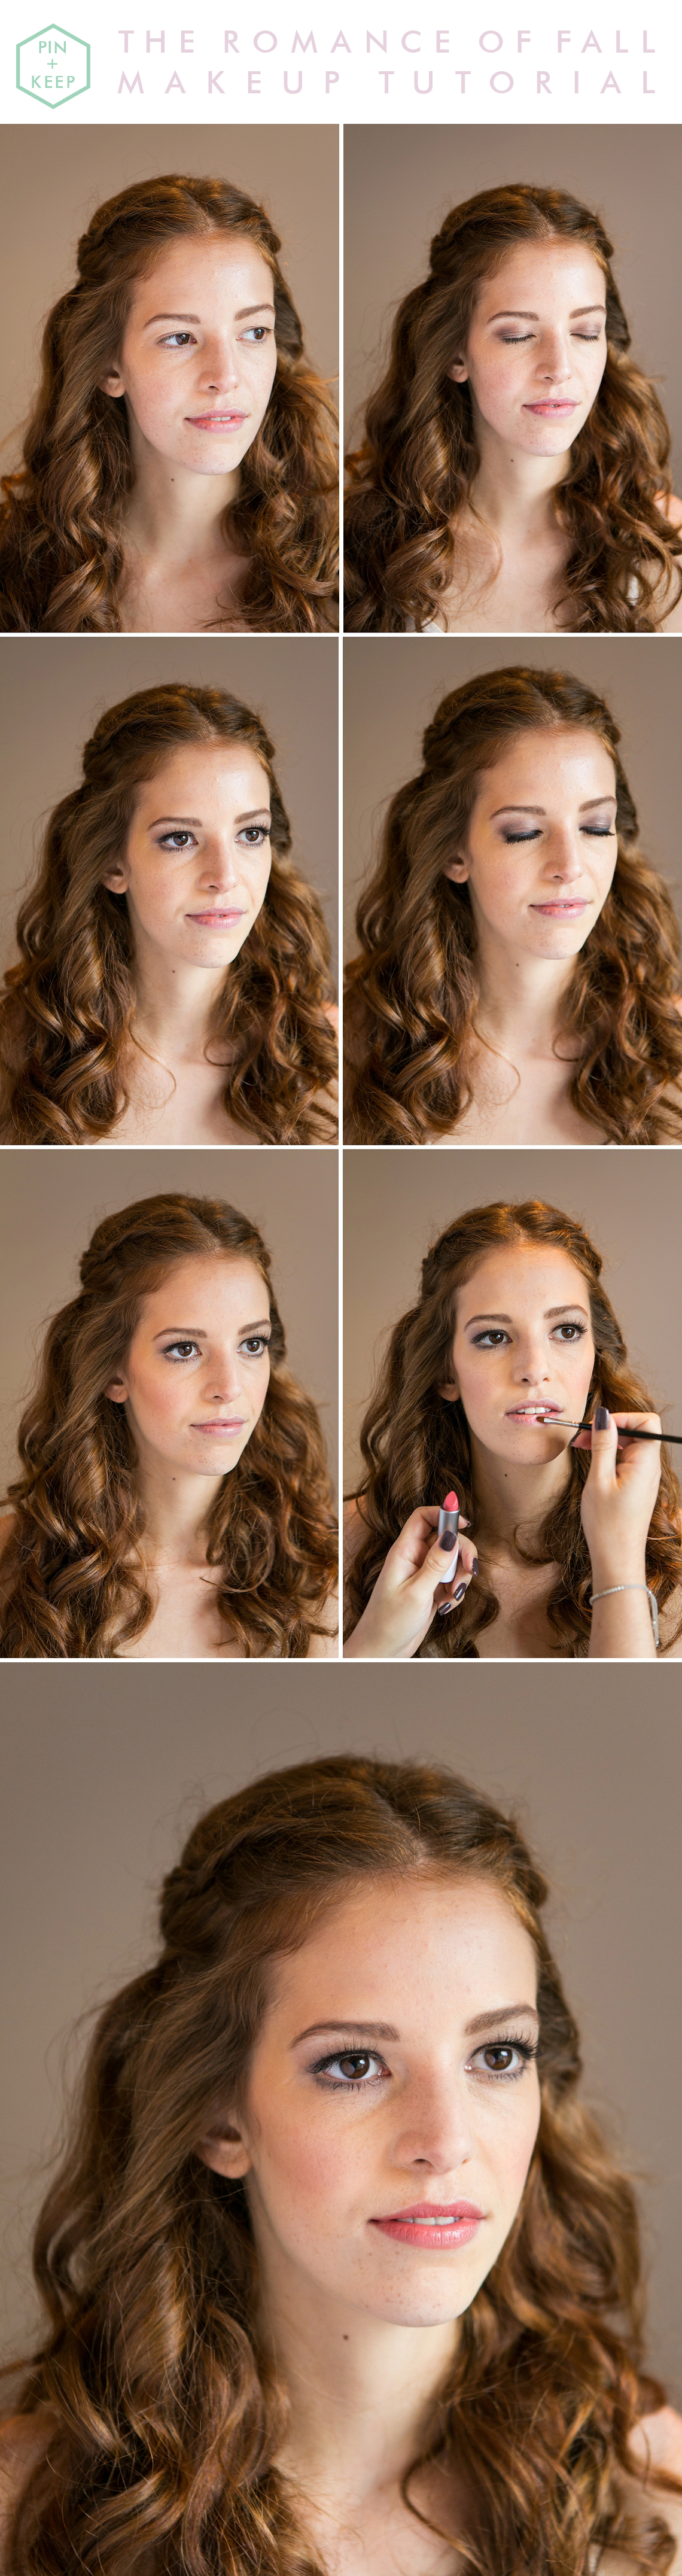 The Romance Of Fall Makeup Tutorial by Anneli Marinovich (1)